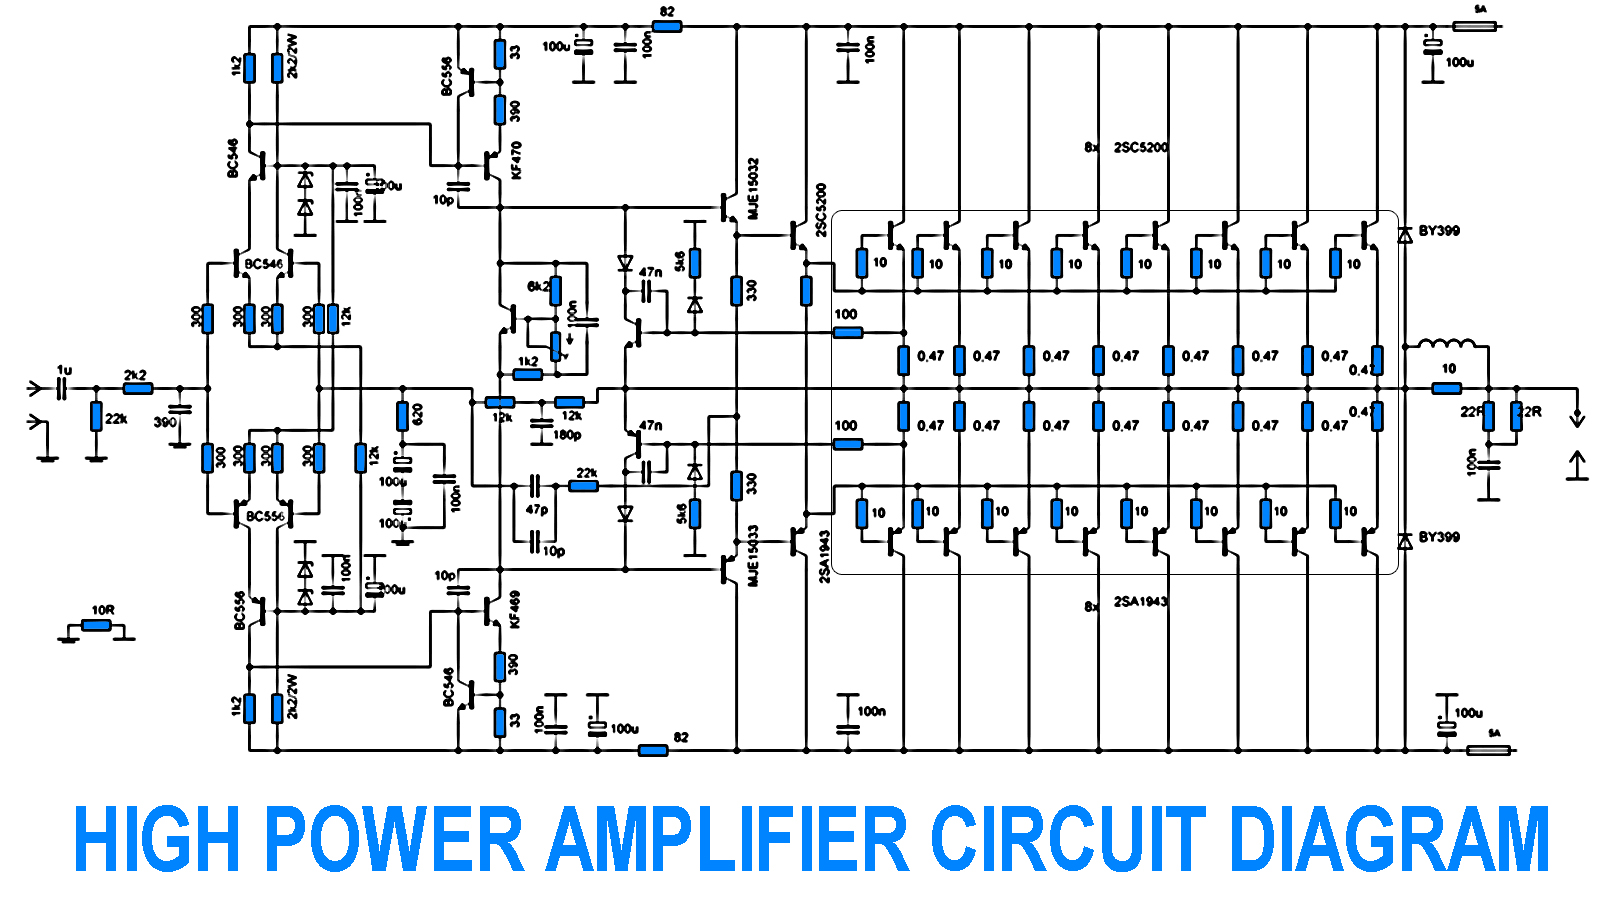 700W Power Amplifier with 2SC5200, 2SA1943  Electronic Circuit